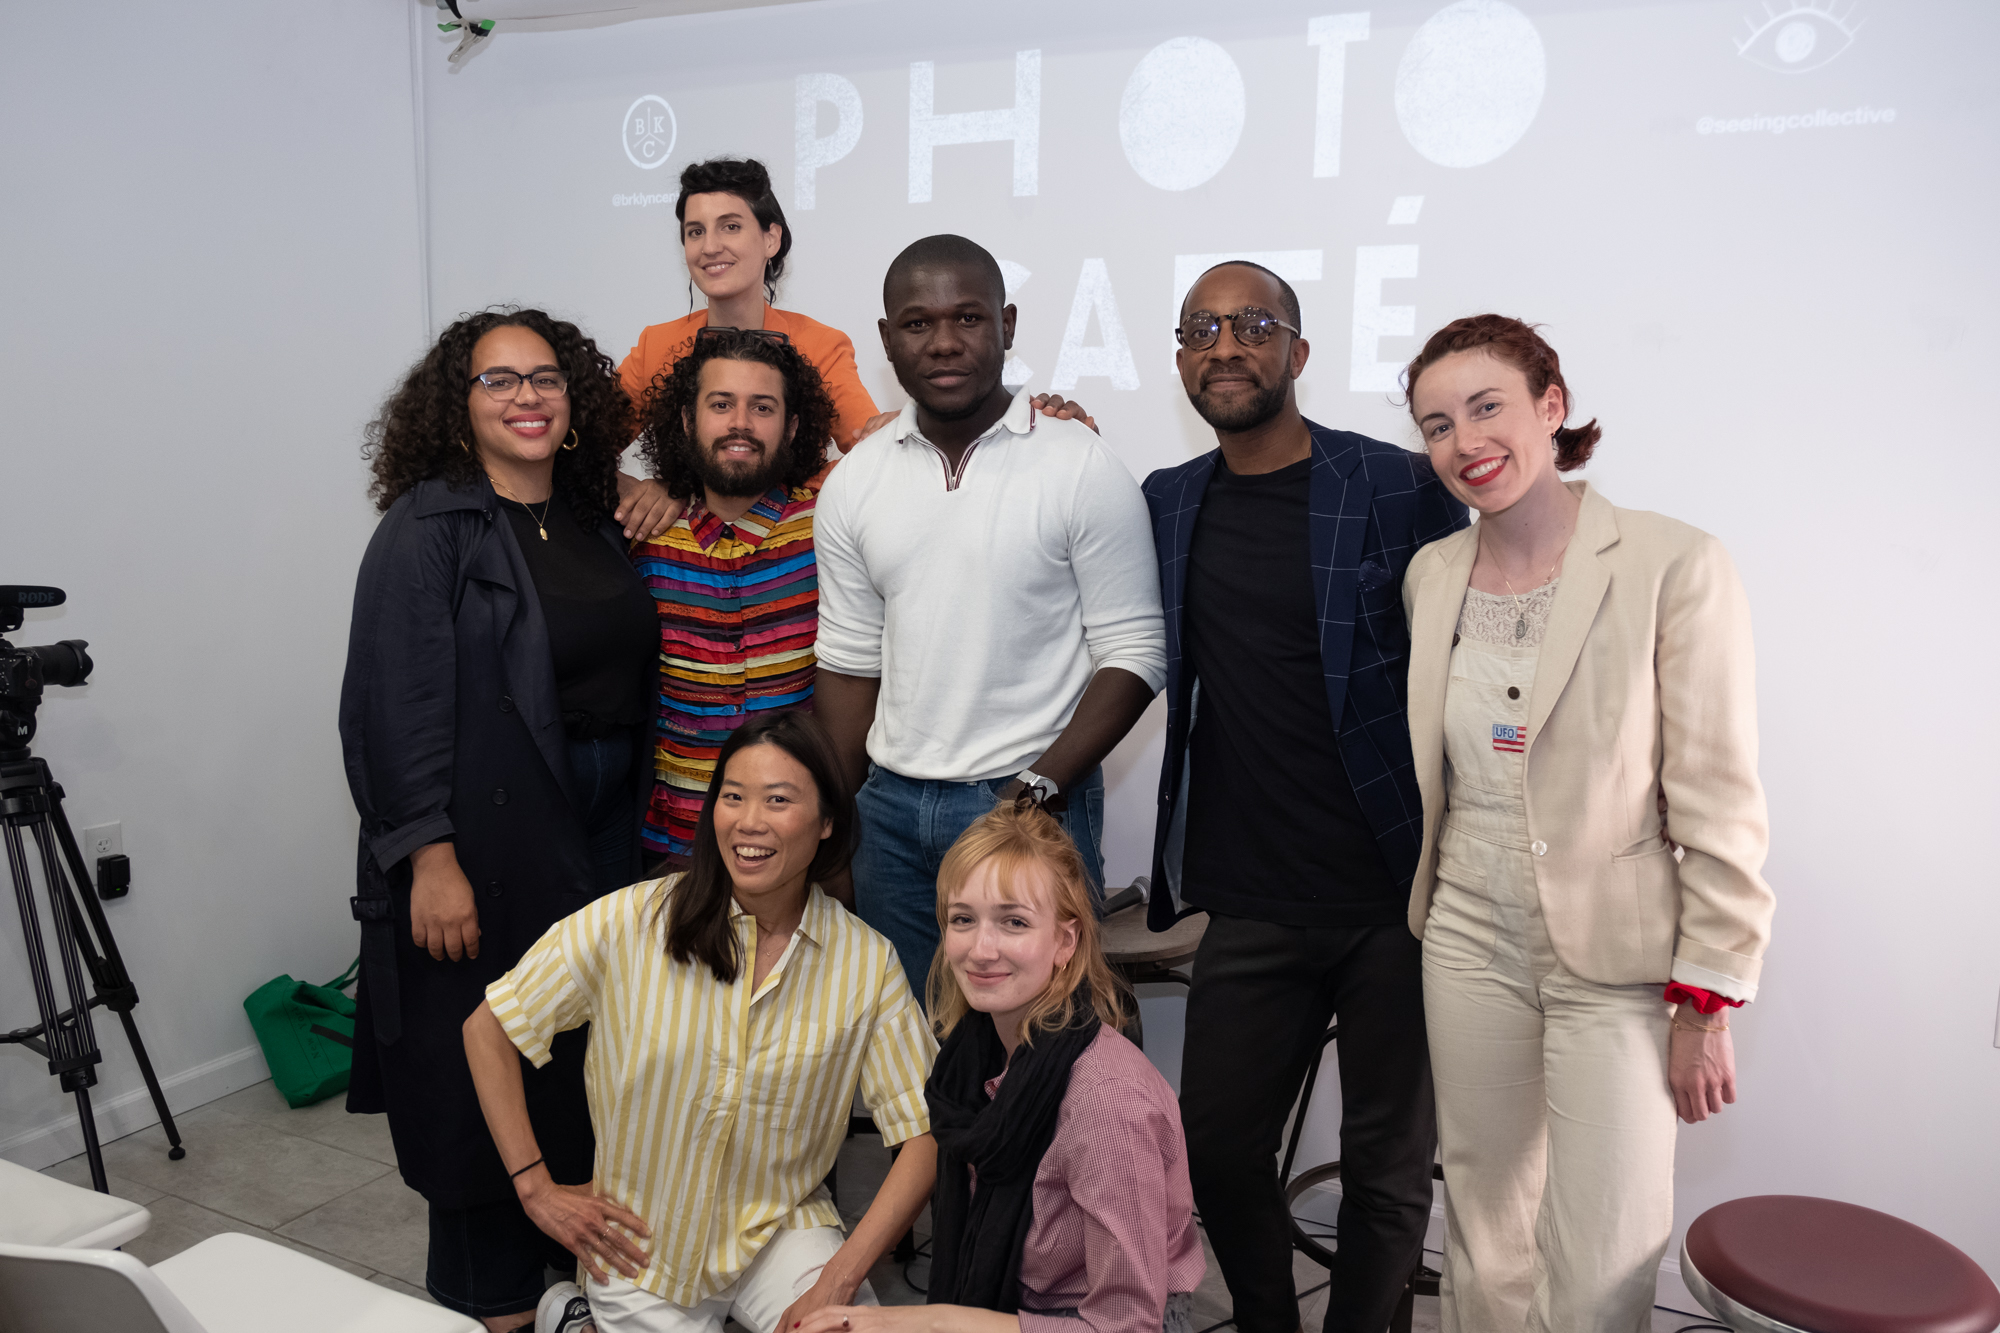 Left to right: Ariana Faye Allensworth, Sina Basila, Christian Rodriguez, Lanna Apisukh, Richard Akuson, Fiona Szende, Jai Lennard, Megan Megan. Thank you to Justin Lin for capturing this moment!